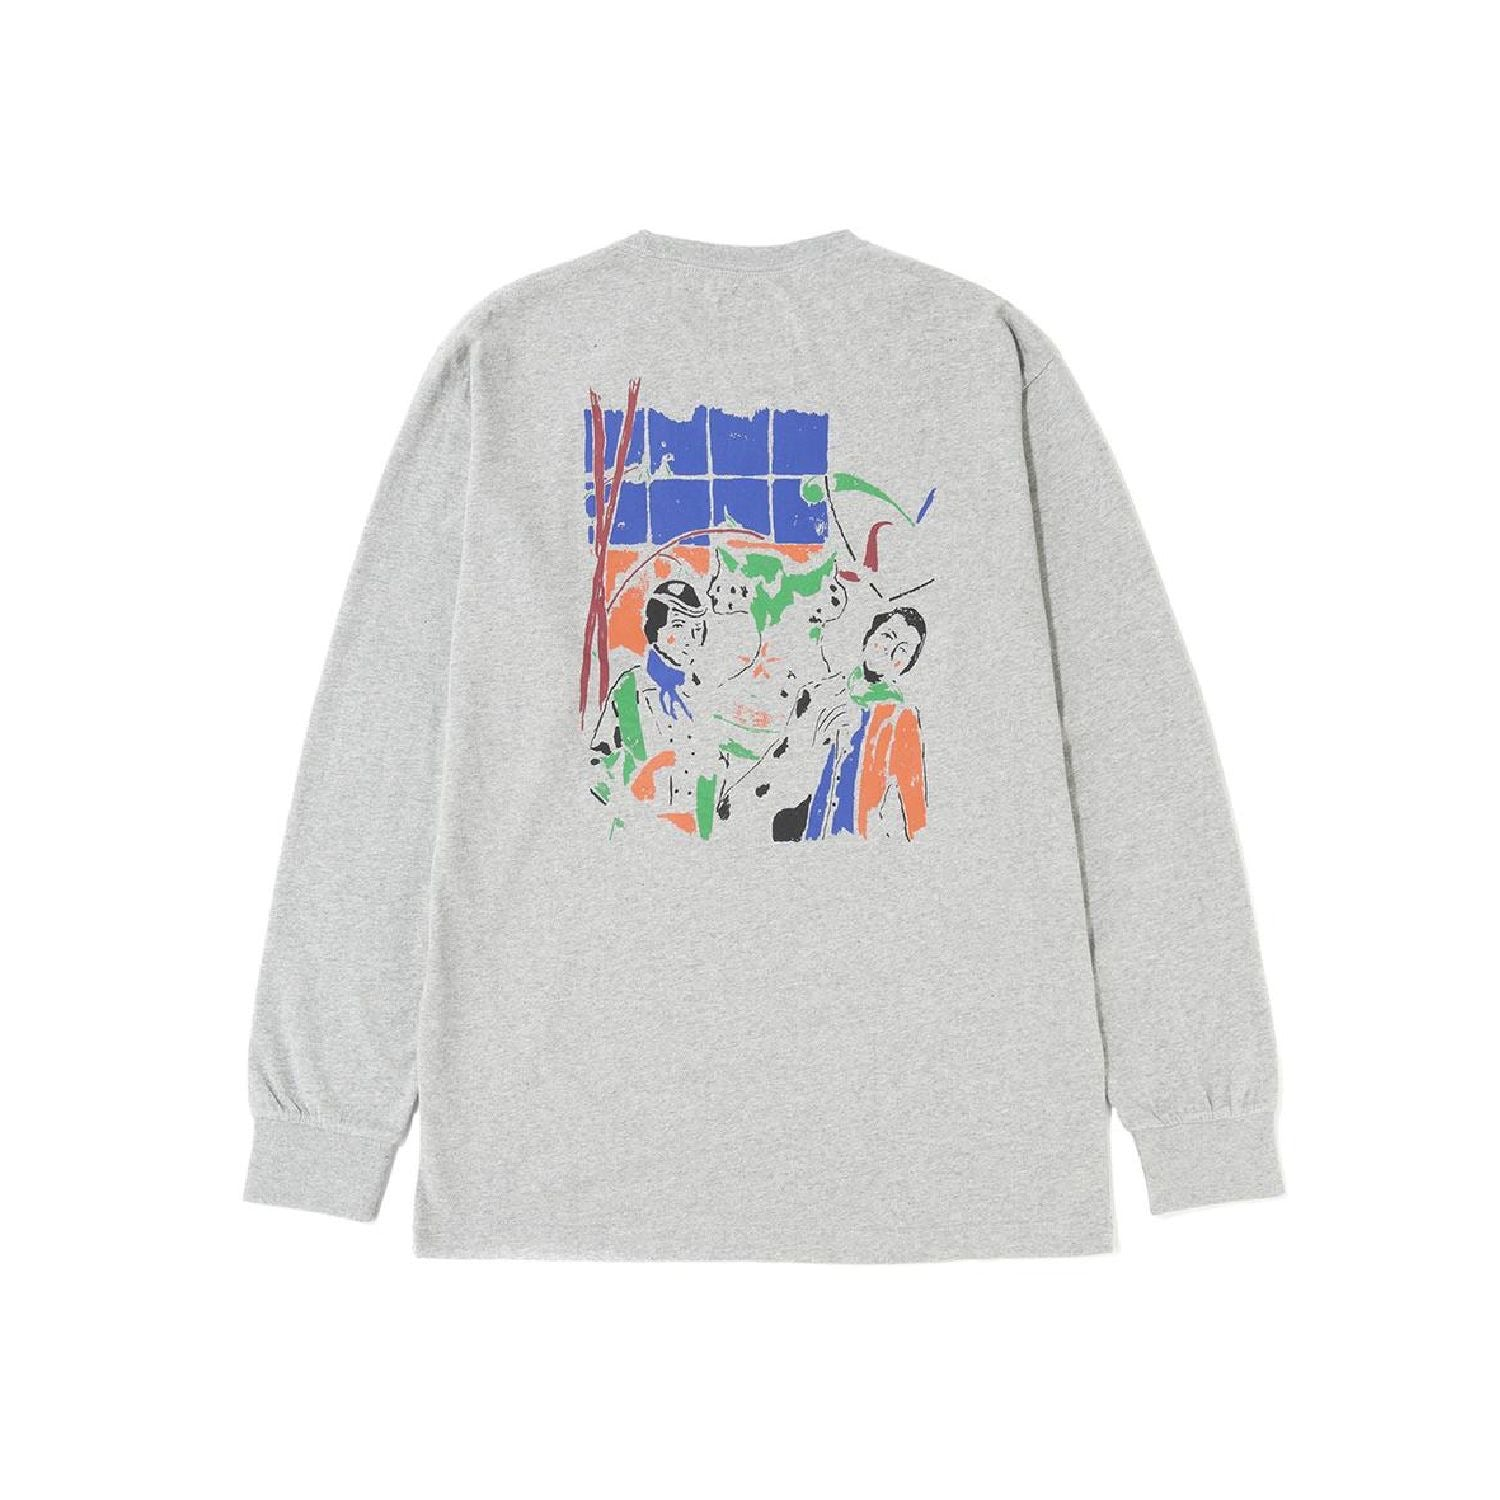 Reception Melkerij L/S T-Shirt - Grey